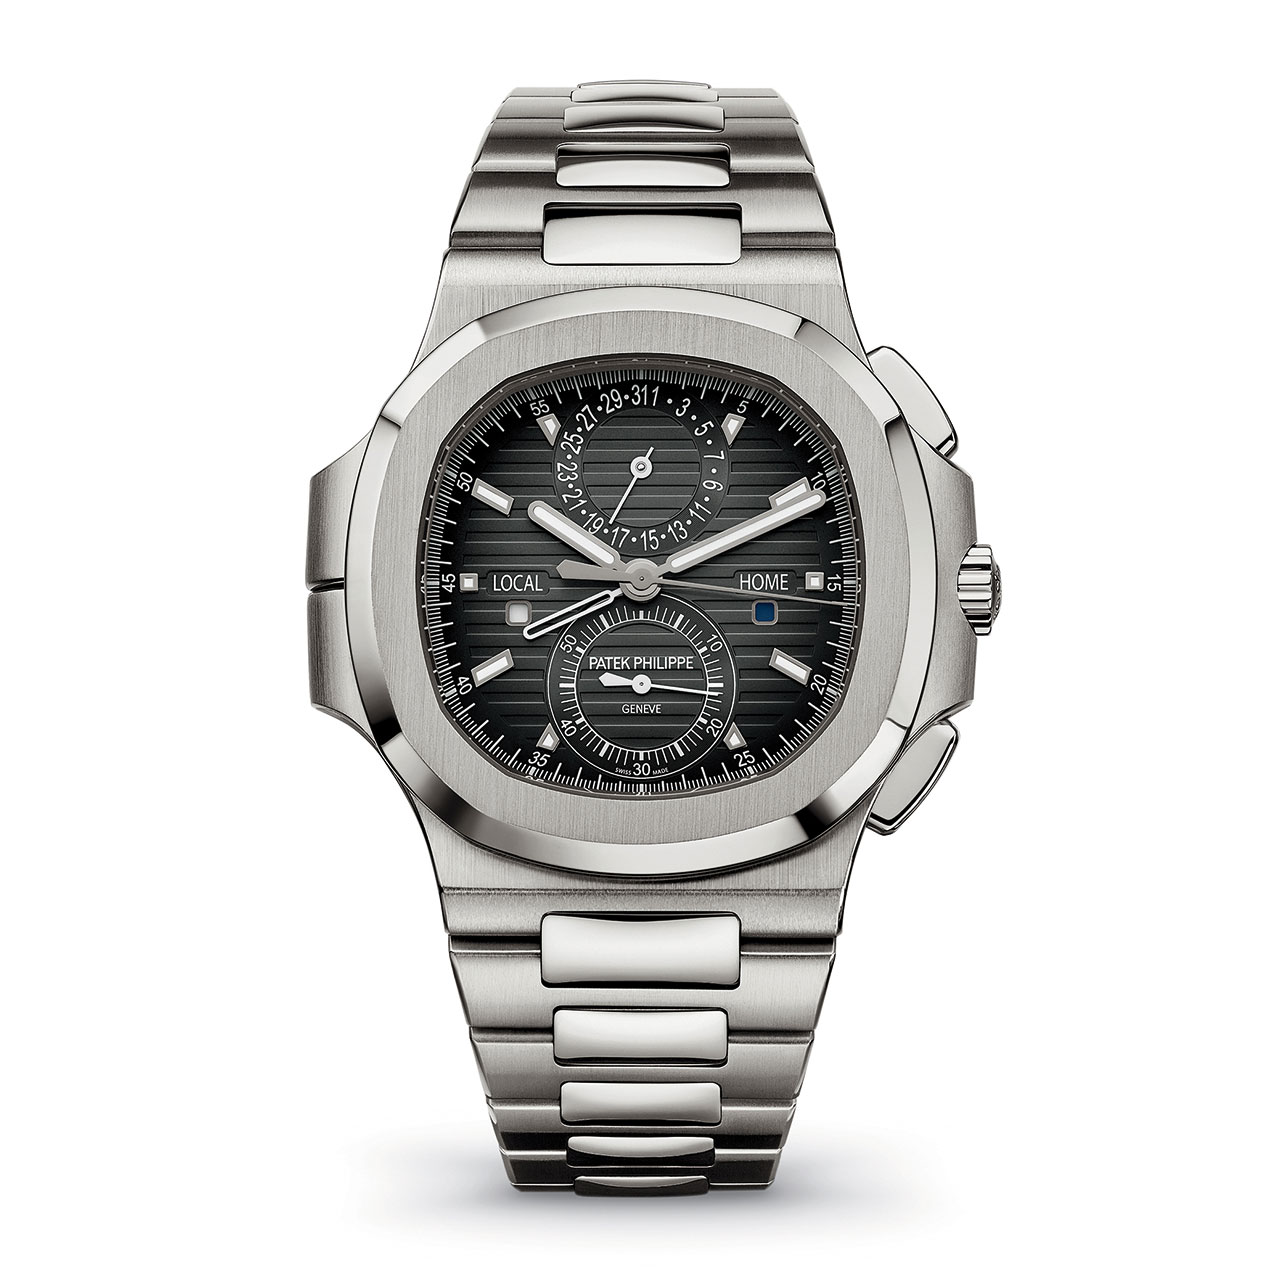 Patek Philippe Nautilus Travel Time Chronograph Réf. 5990/1A-001 Automatic Watch